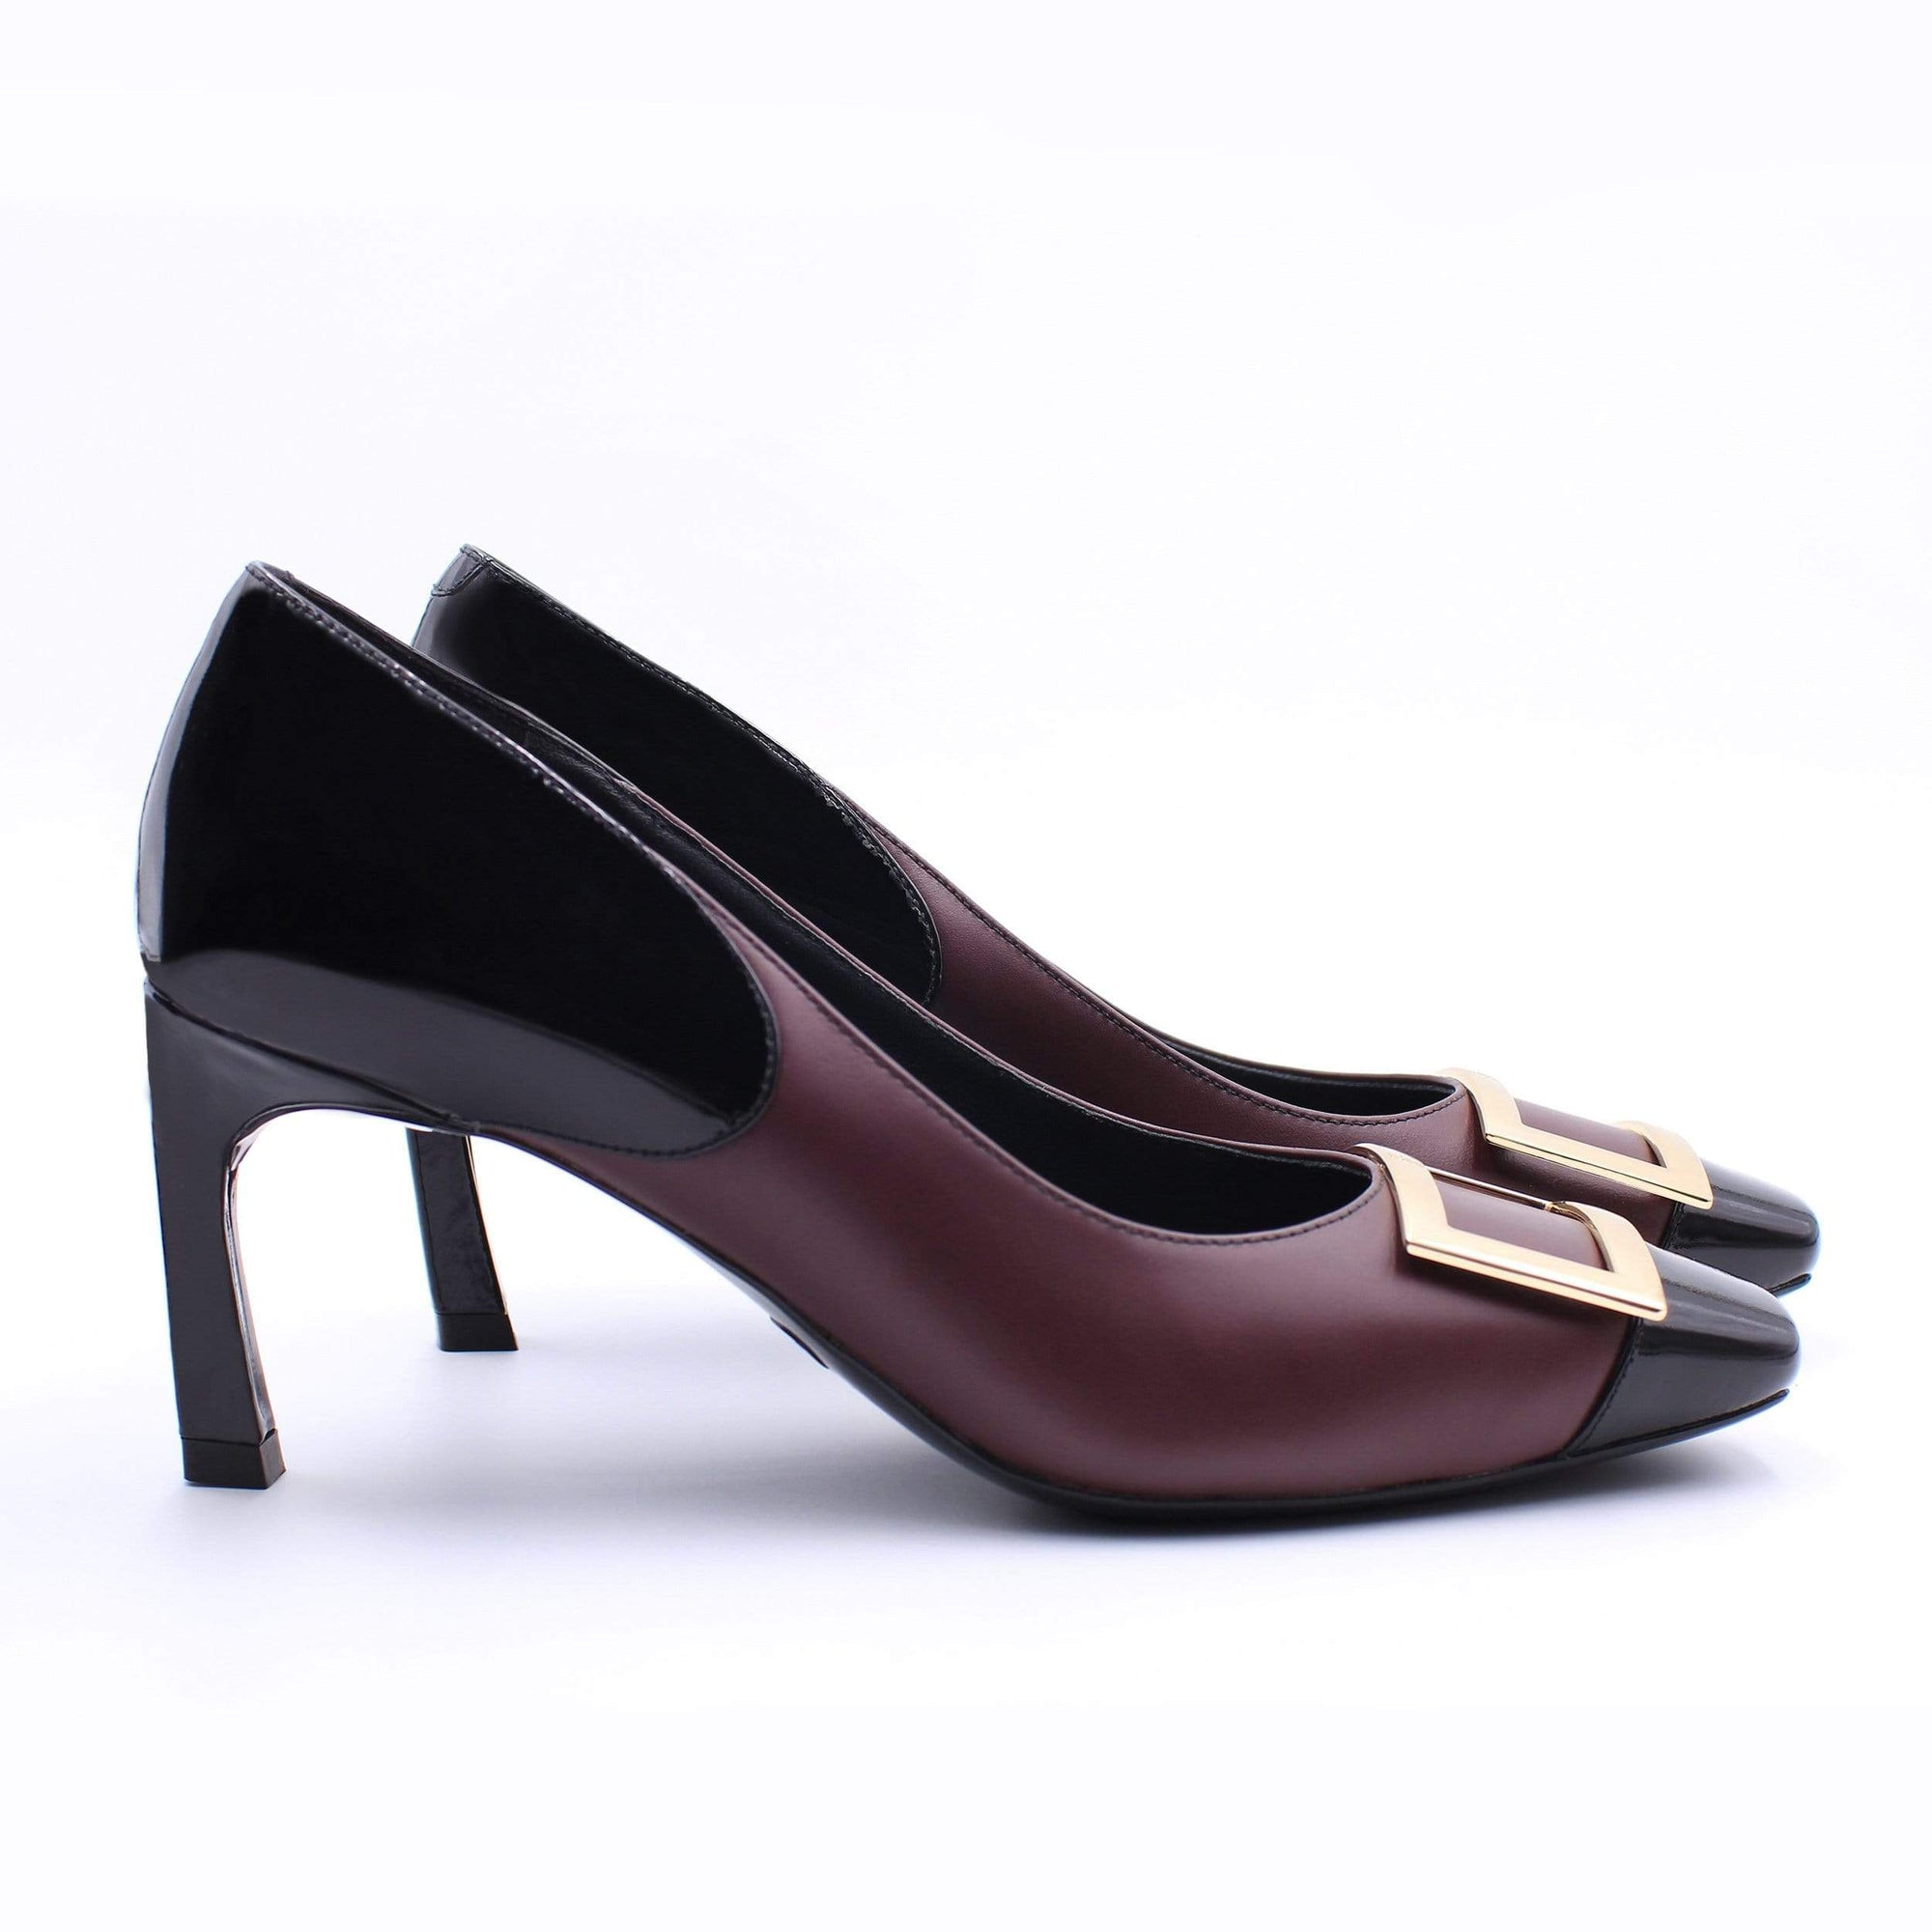 HOPE ROSA Pumps GRACE PUMP - MAROON/BLACK PATENT